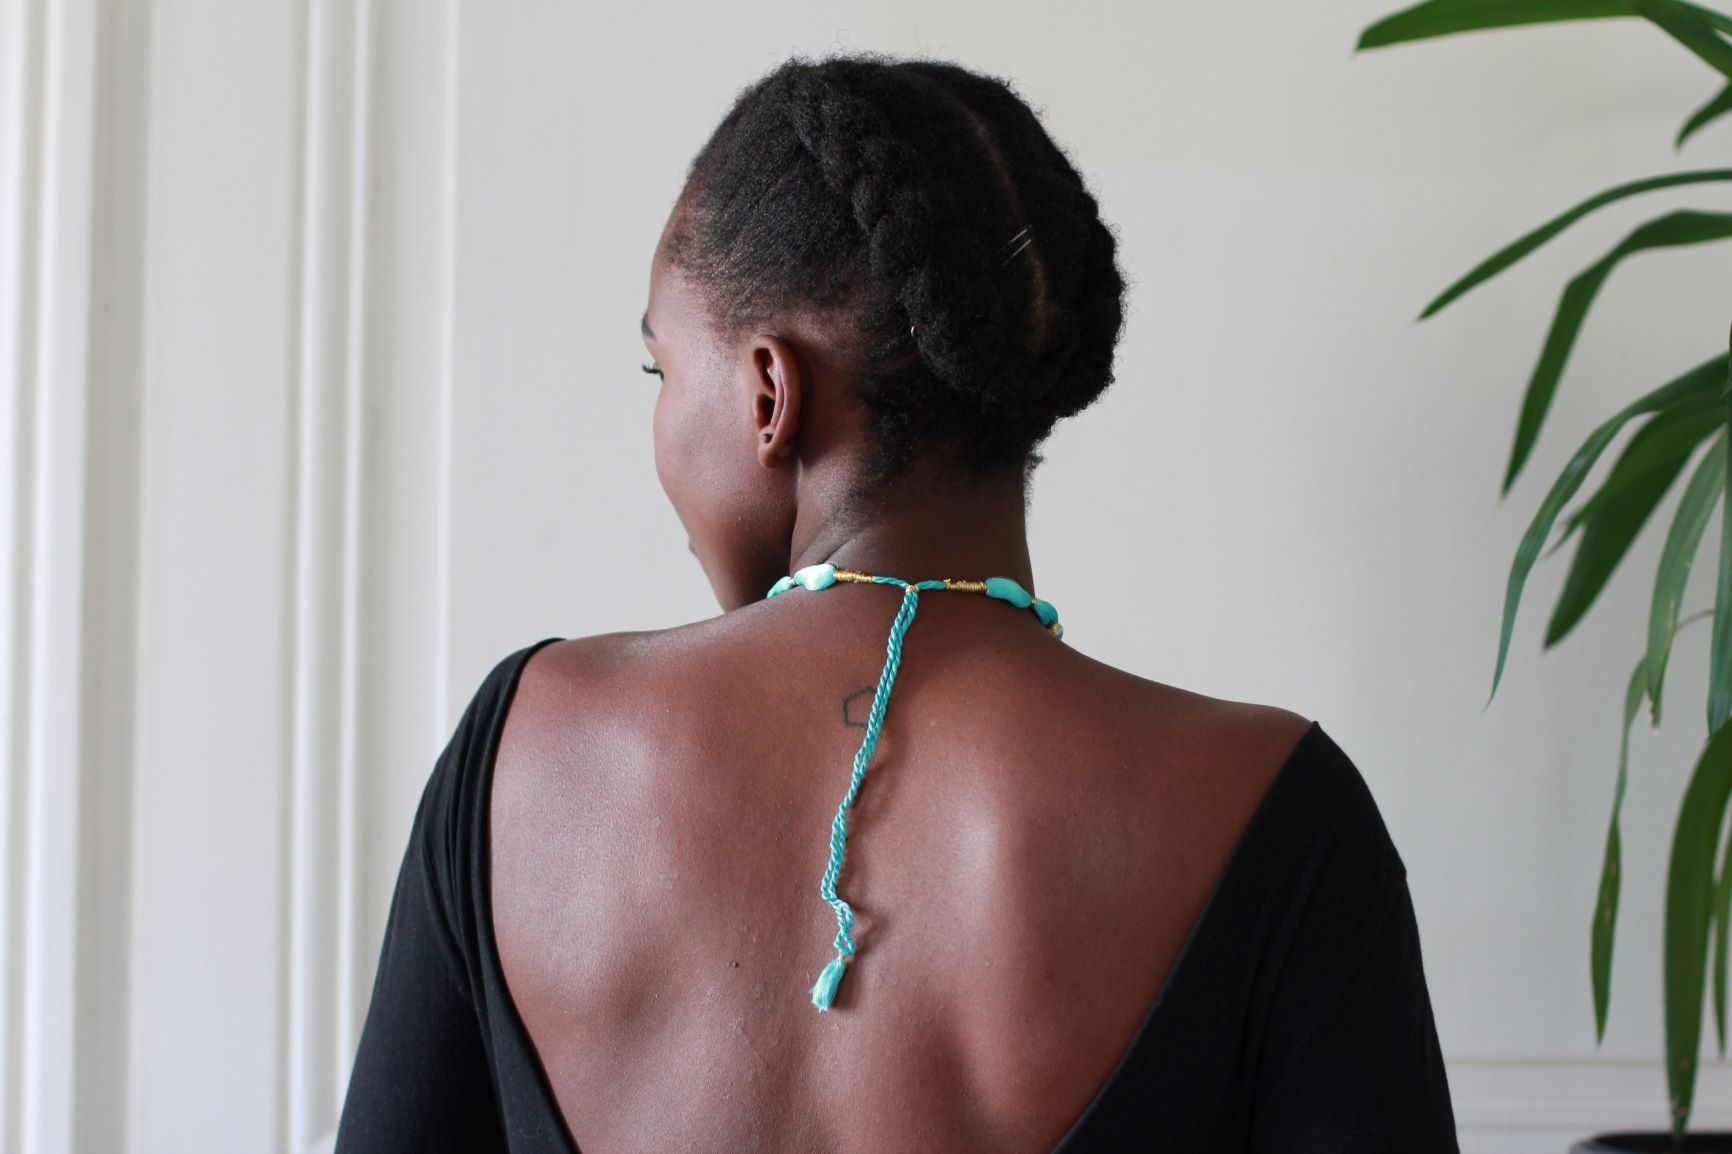 Collier en soie Bleu ciel - Collier - Azaadi, la mode responsable accessible